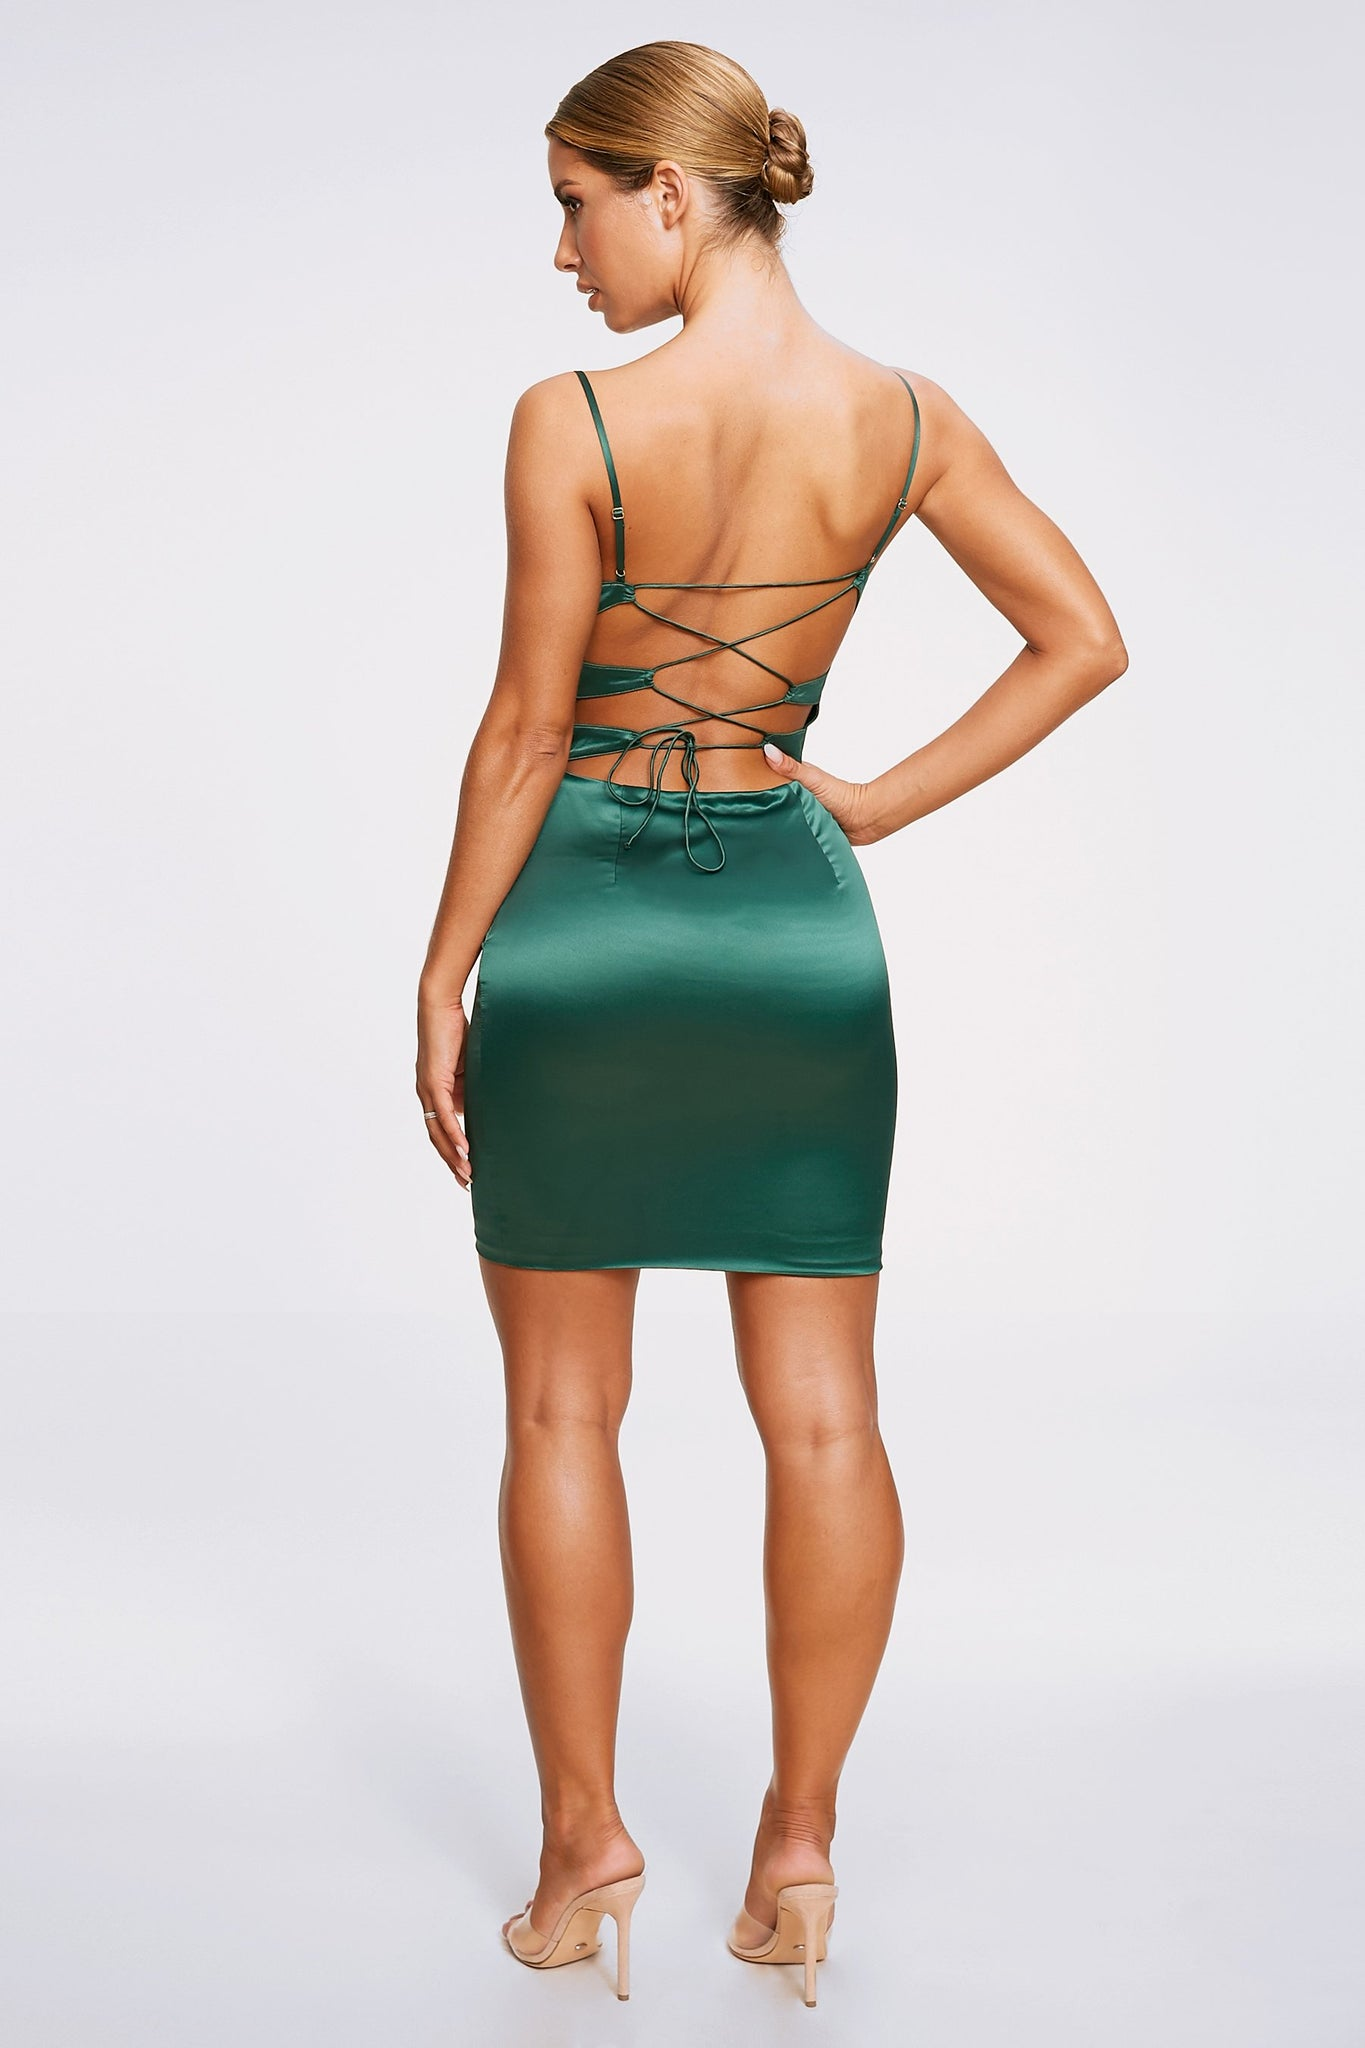 Zoey Cowl Neck Strappy Back Mini Dress - Emerald Green - MESHKI